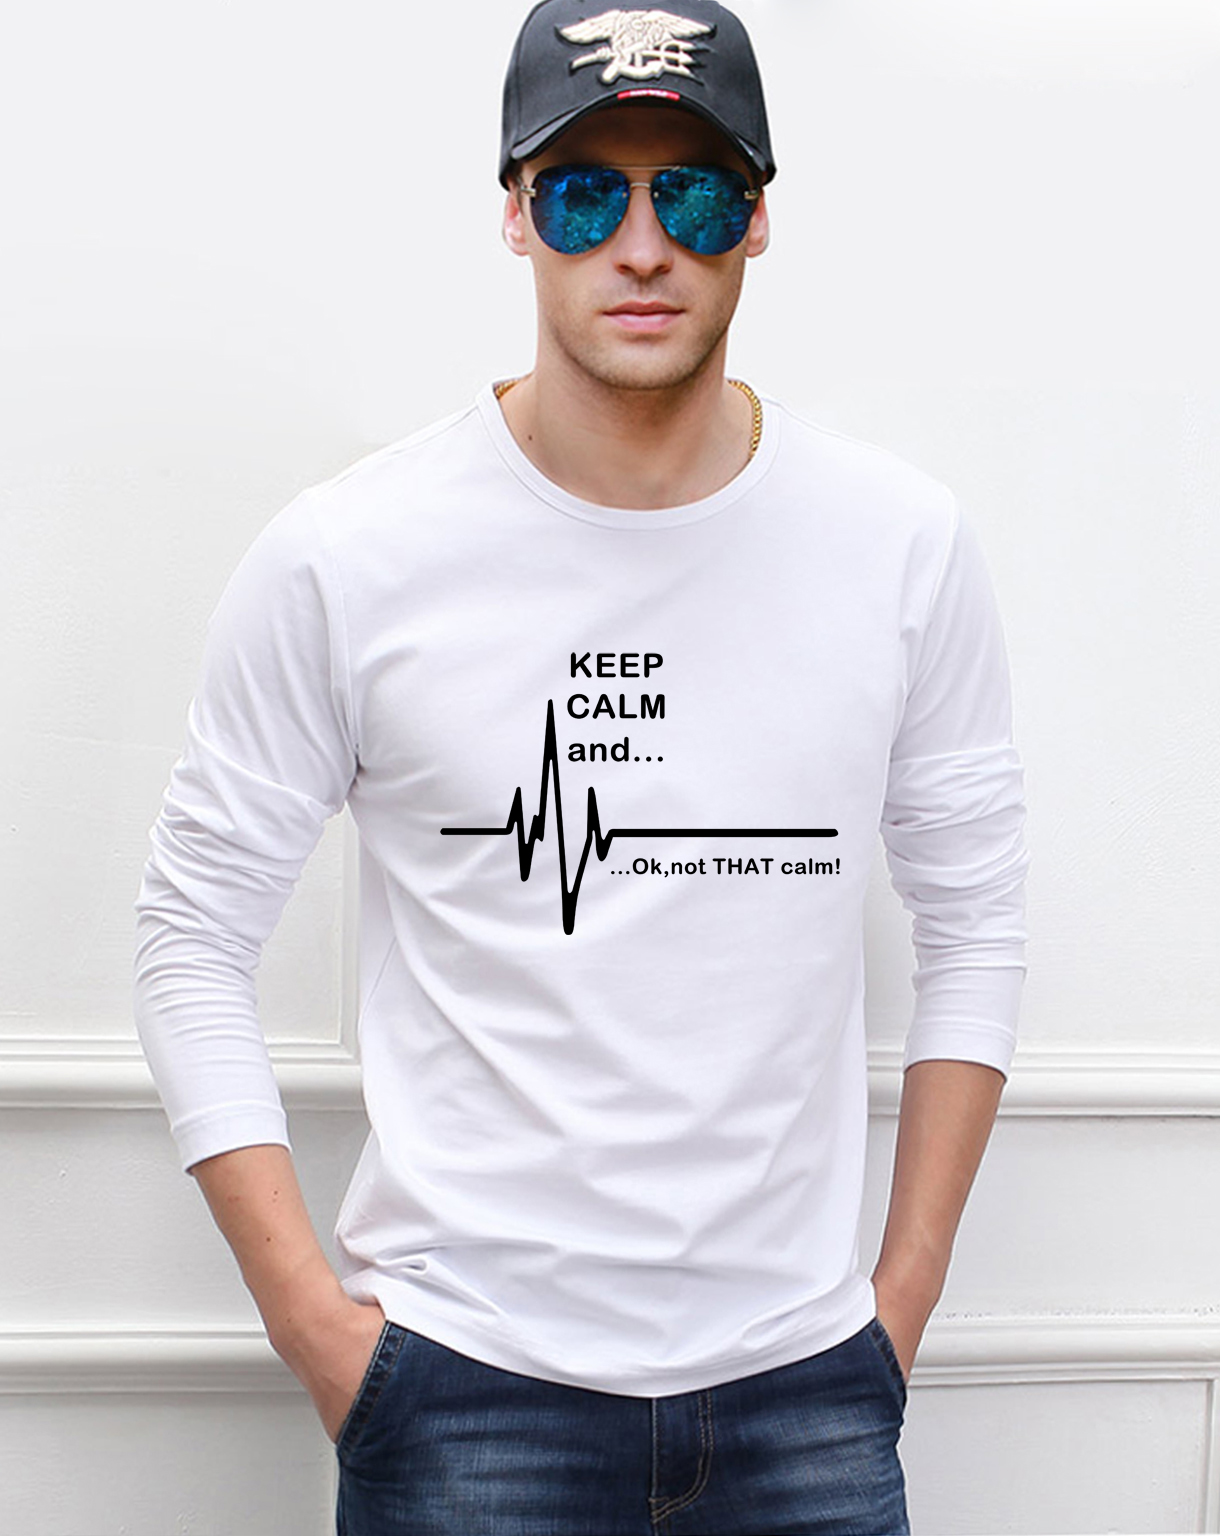 2019 spring new 100% cotton men's long sleeve   t  -  shirts   funny men   t     shirt   Keep Calm and...Not That Calm EKG Heart Rate top tees